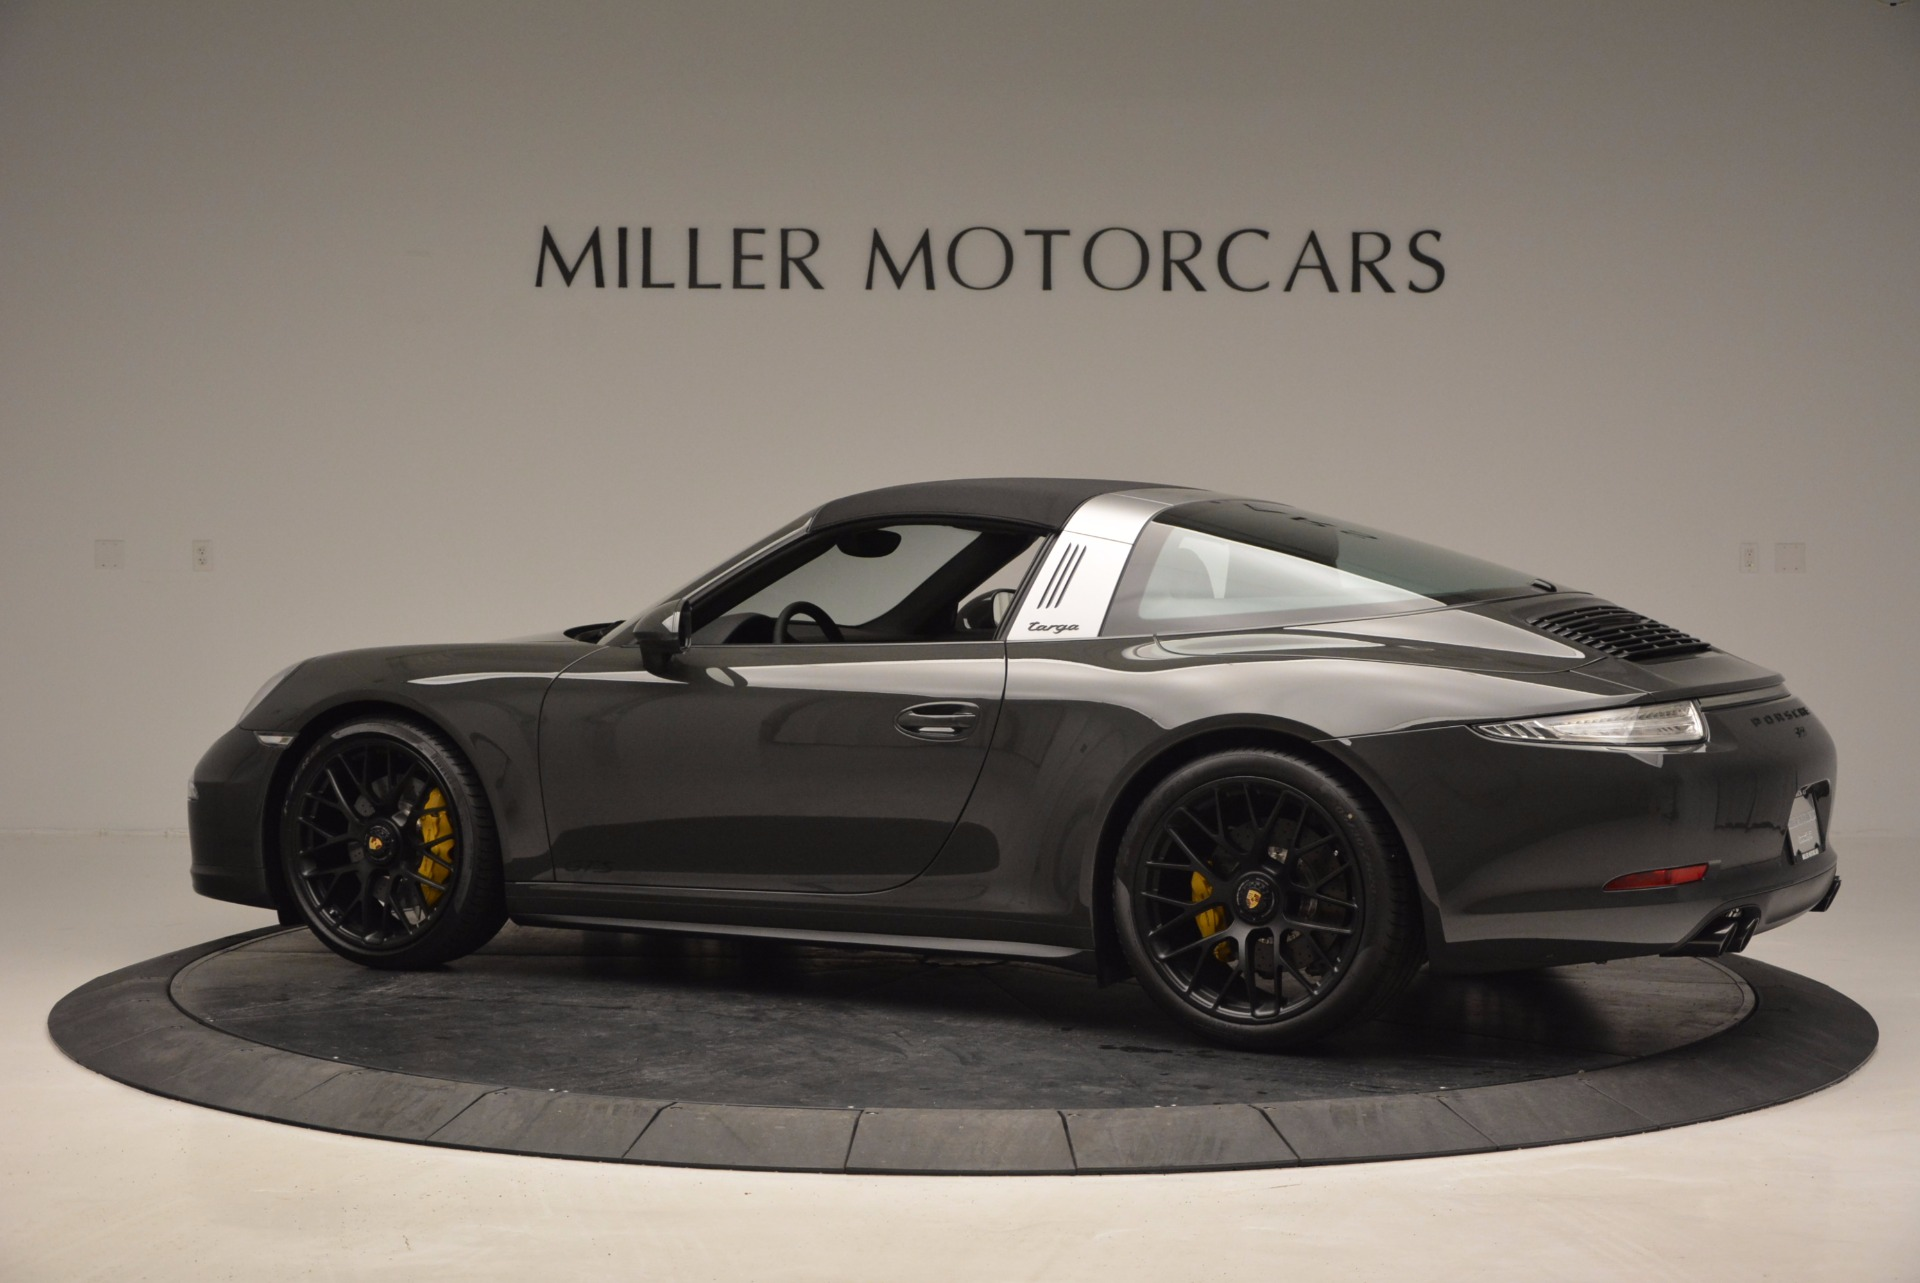 Used 2016 Porsche 911 Targa 4 GTS For Sale In Greenwich, CT 799_p15